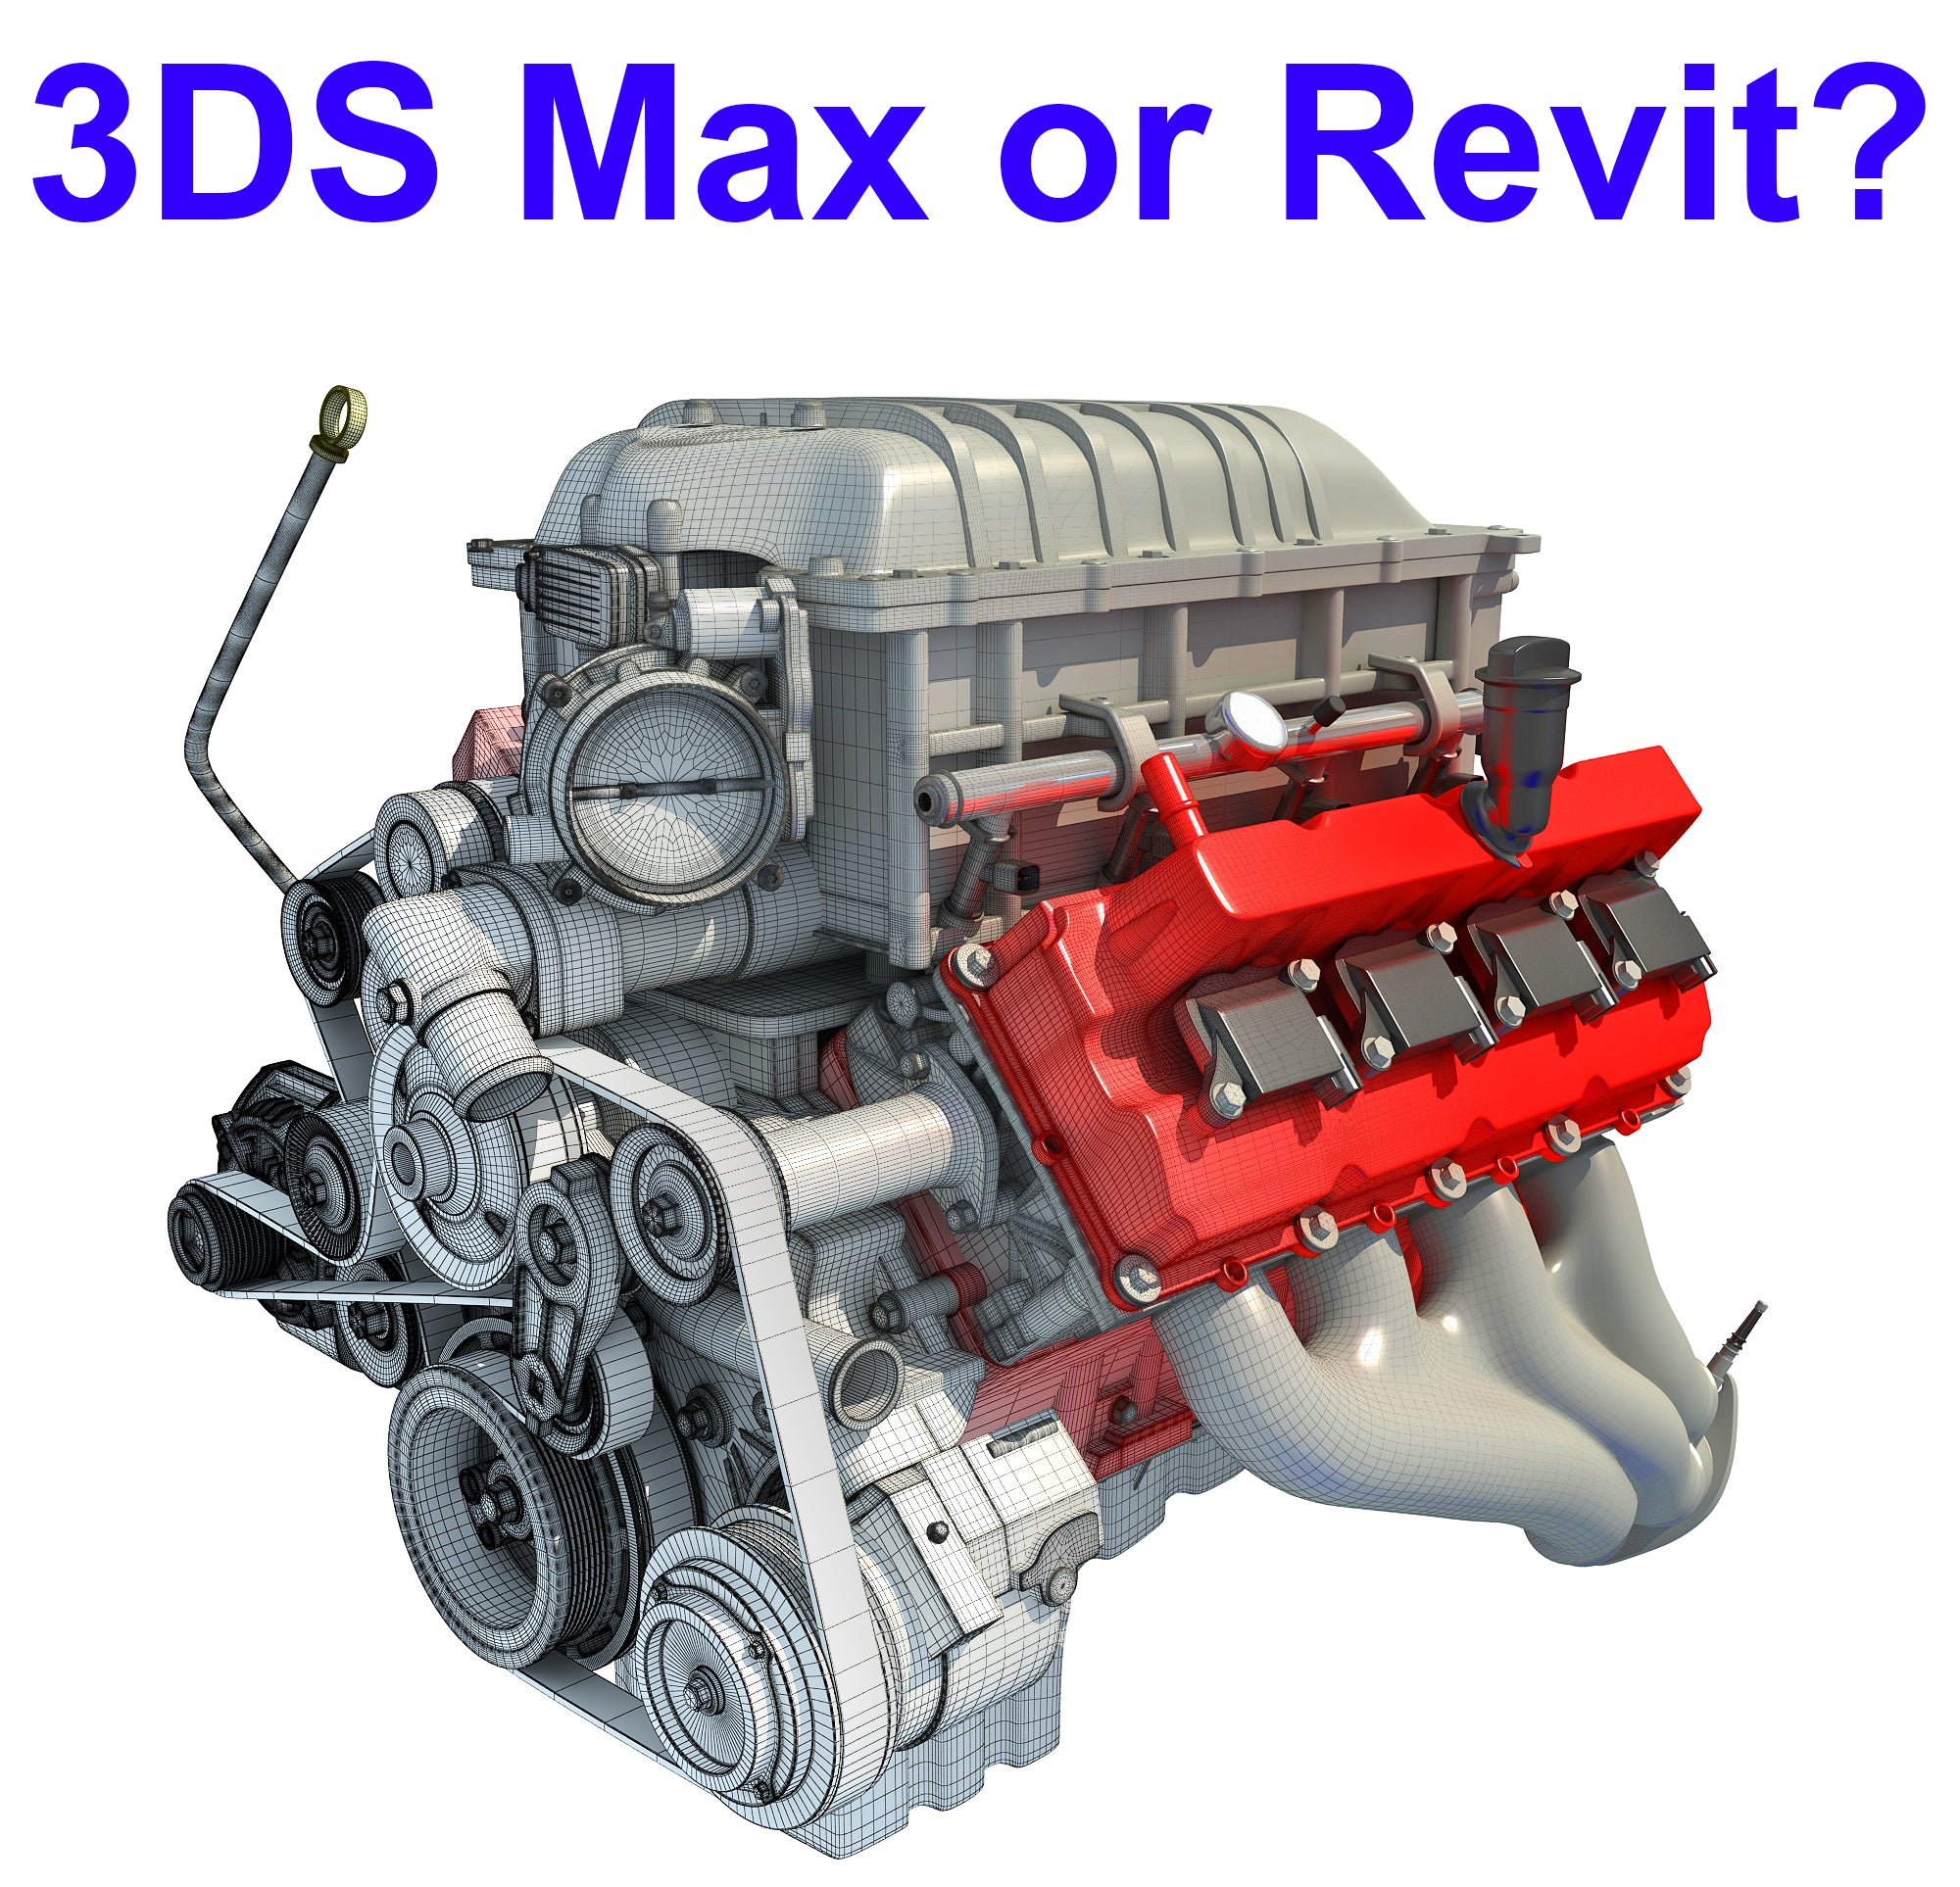 3DS Max or Revit, which is Better?